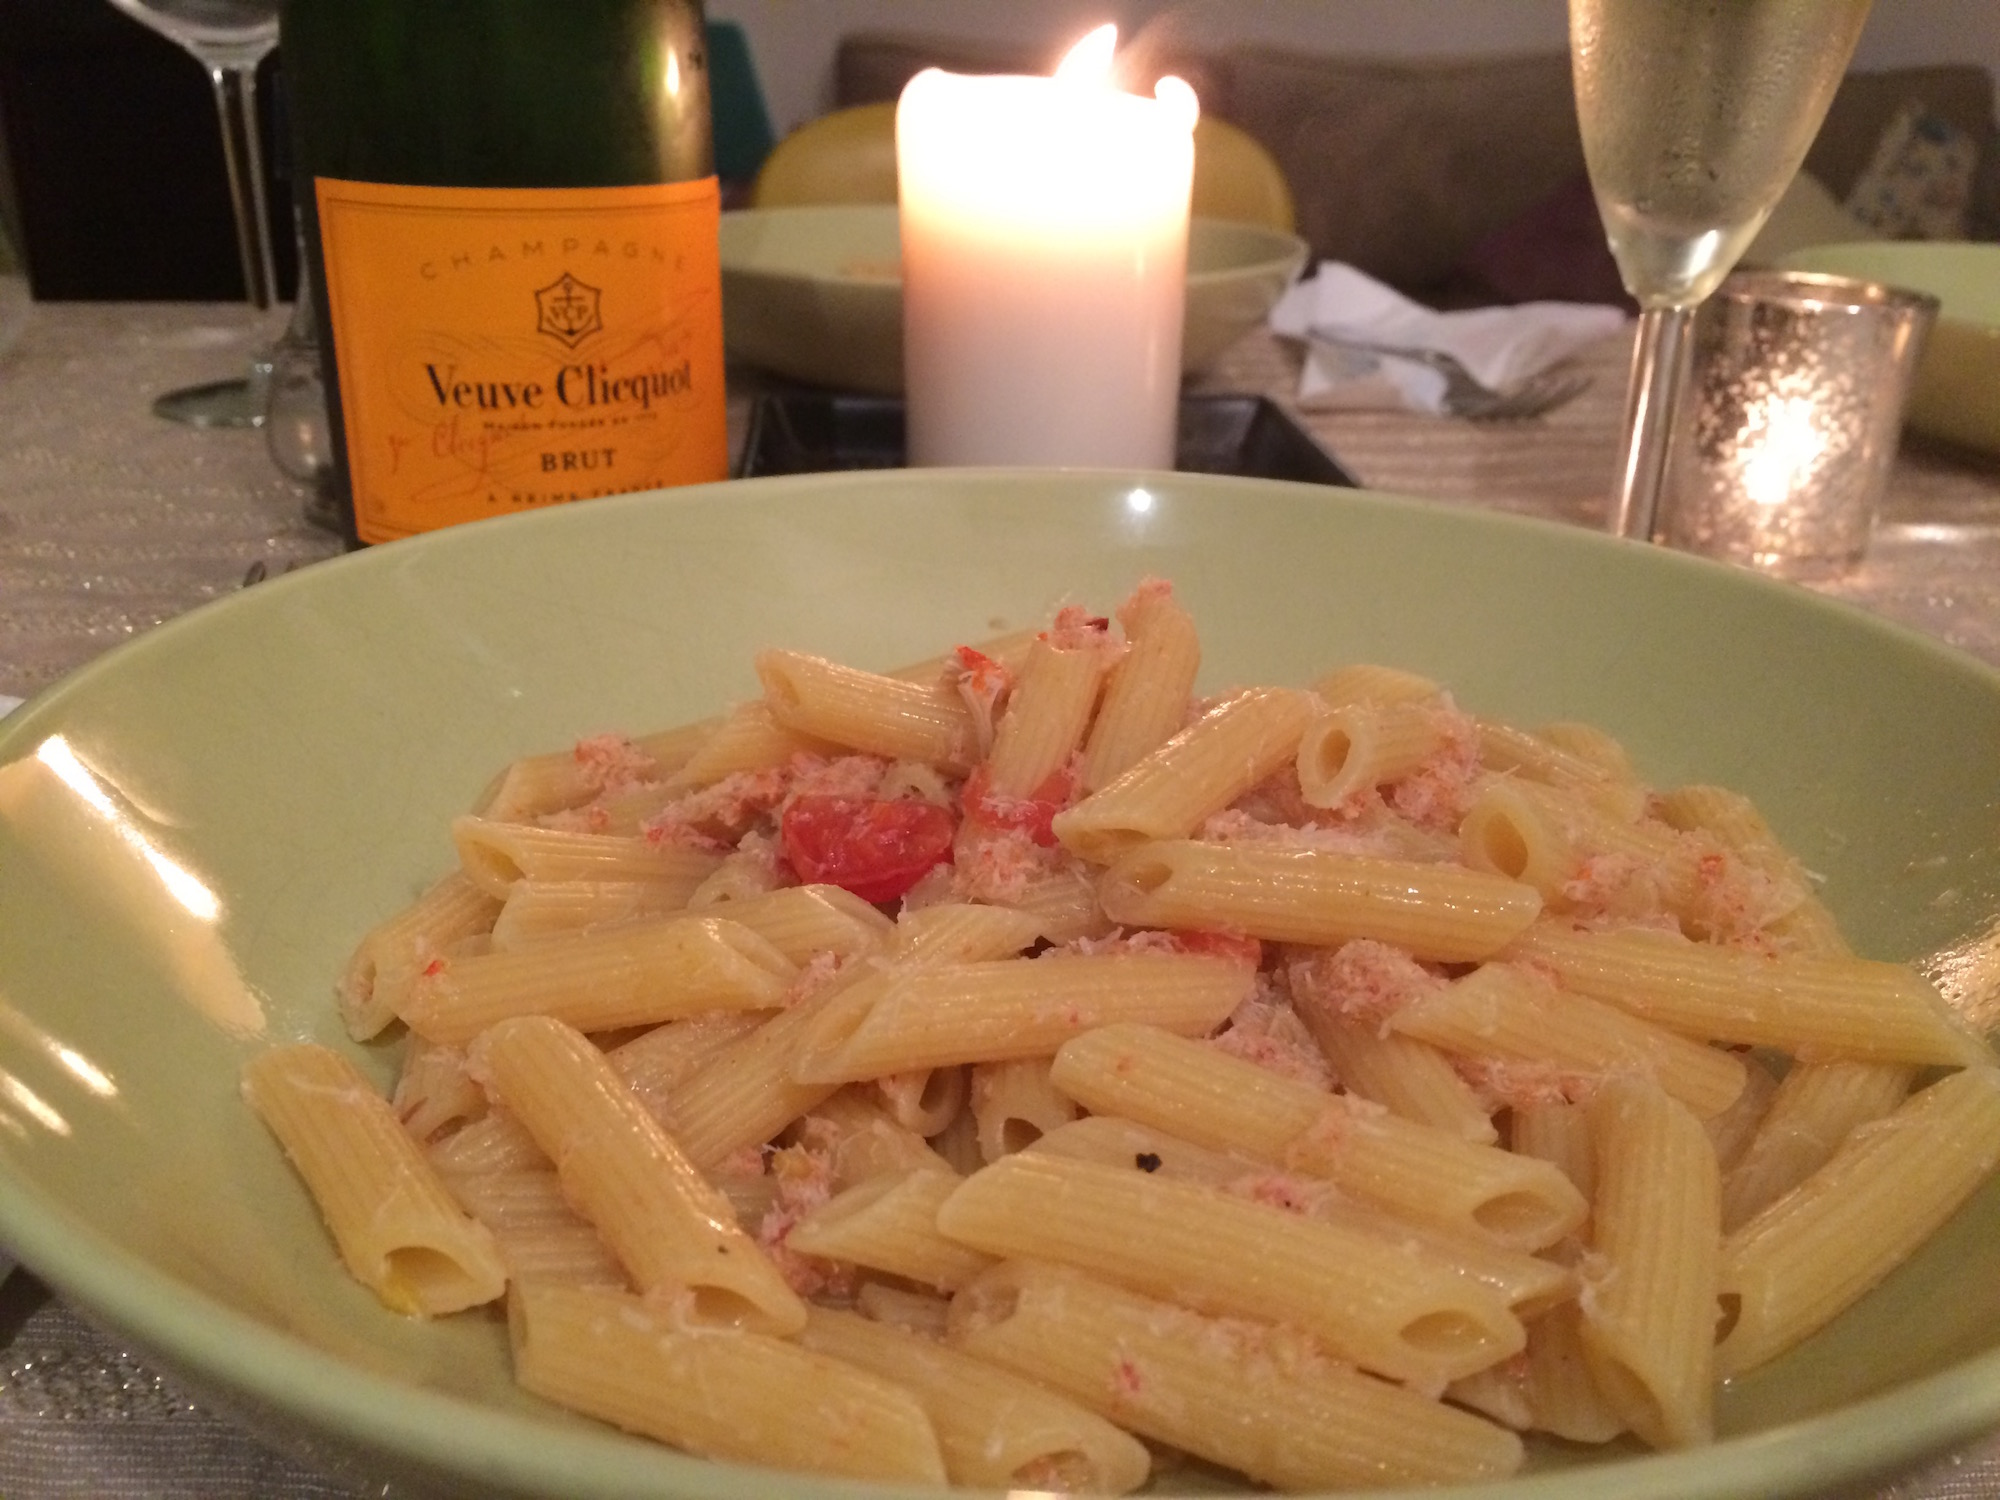 Penne with crab sauce and Champagne Veuve Clicquot